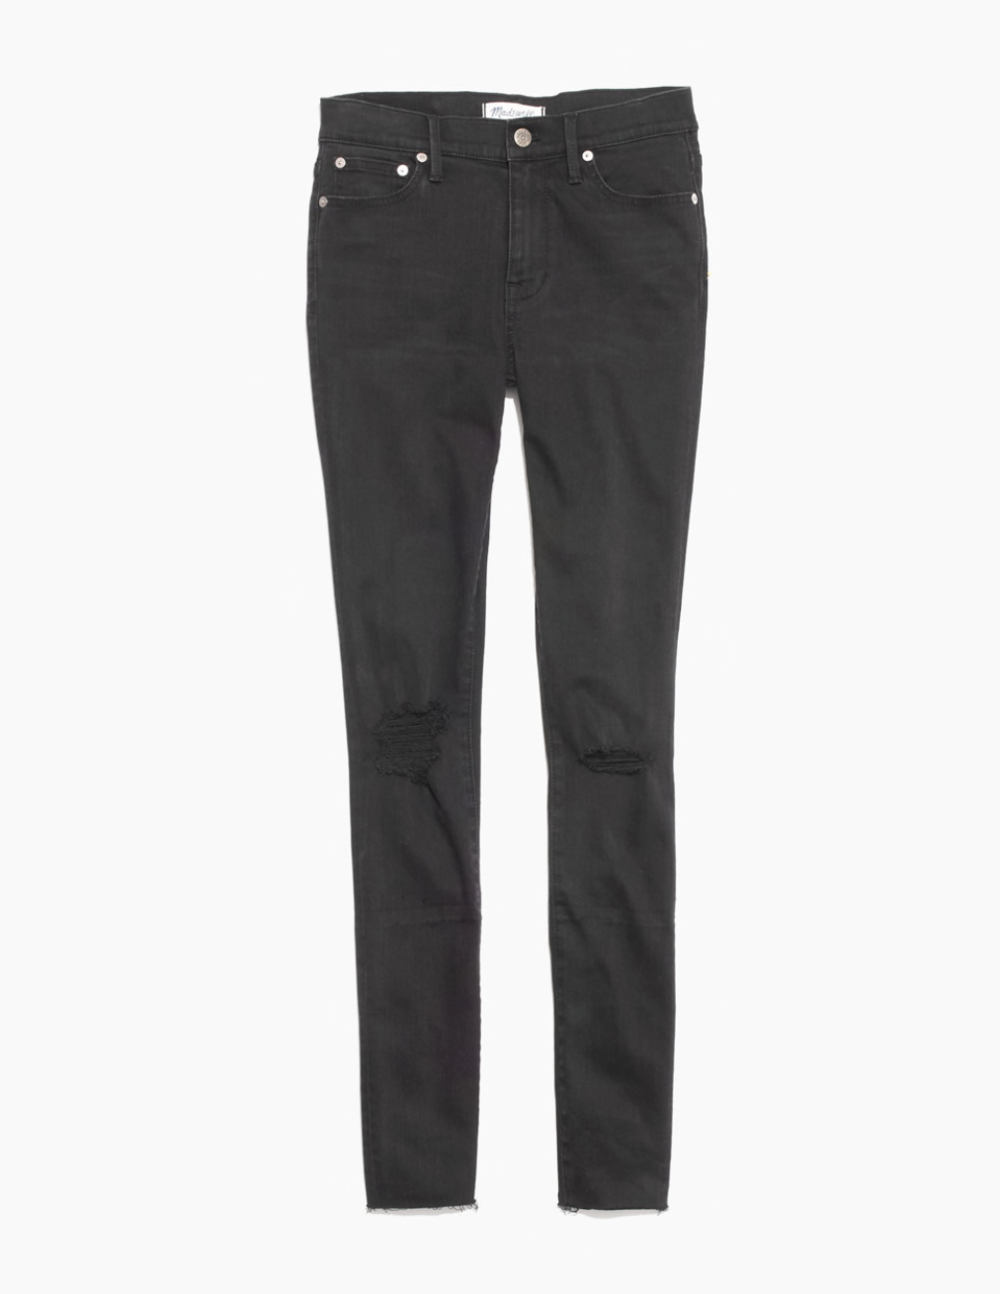 "9"" High-Rise Black Sea Skinny Jeans"